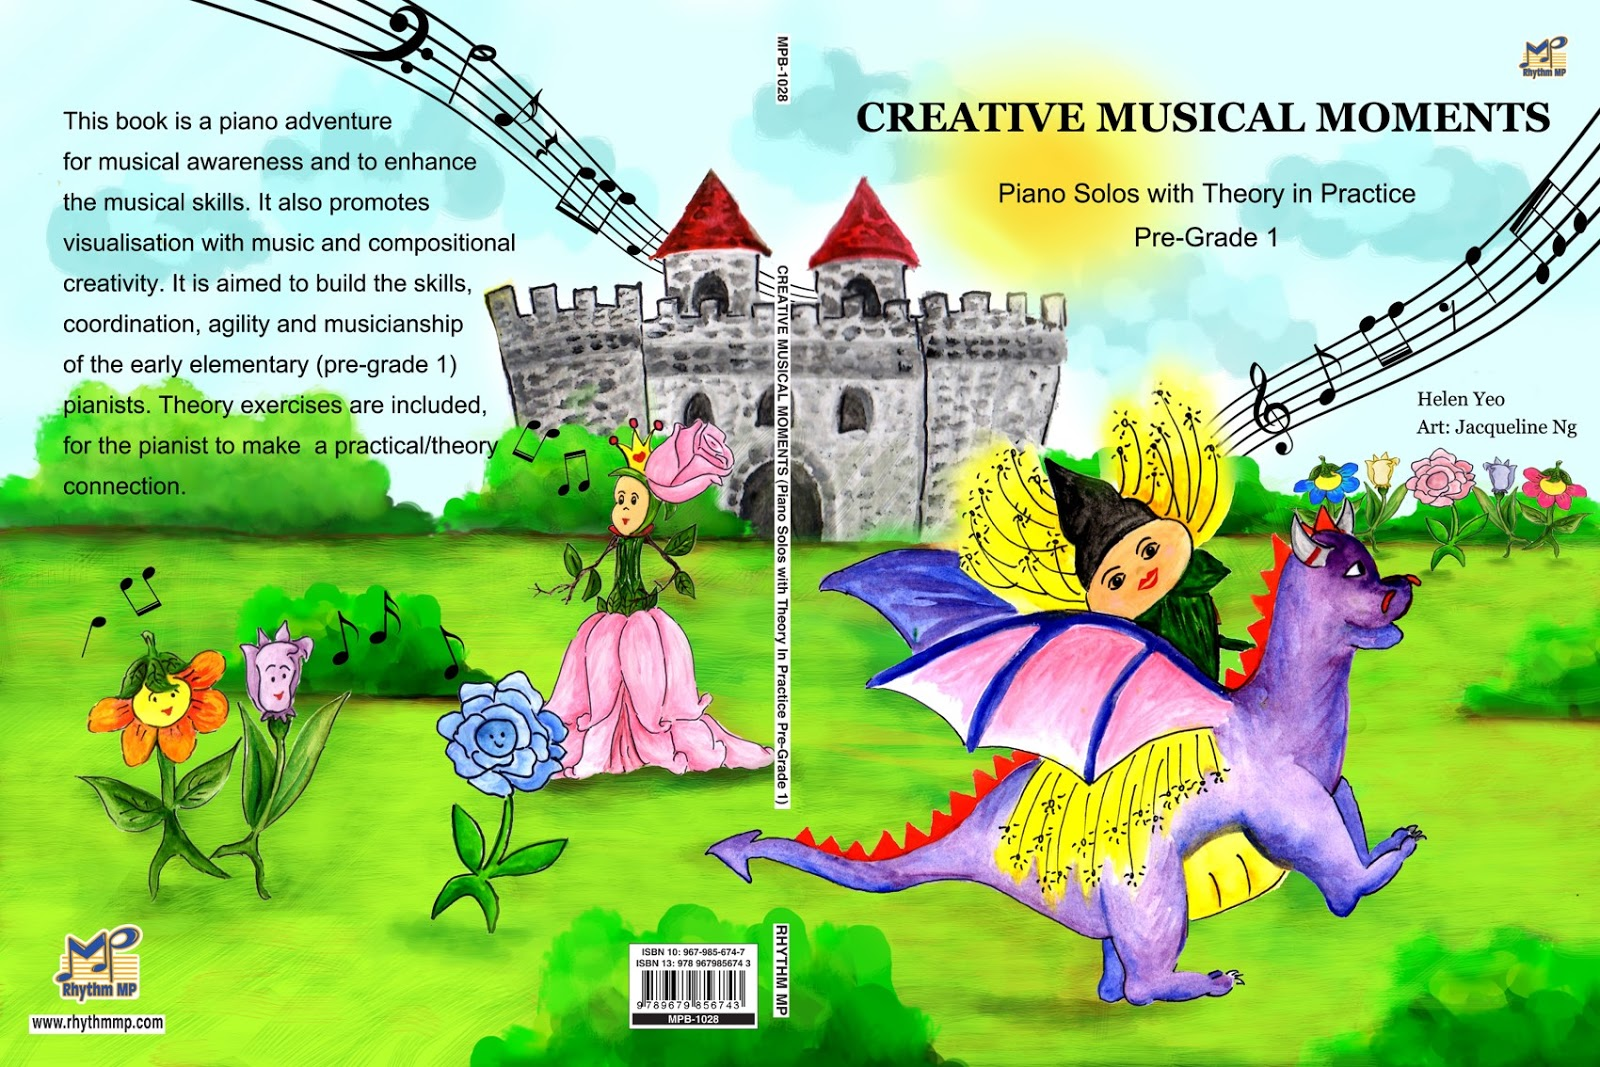 hight resolution of Rhythm MP • the music page: Creative Musical Moments